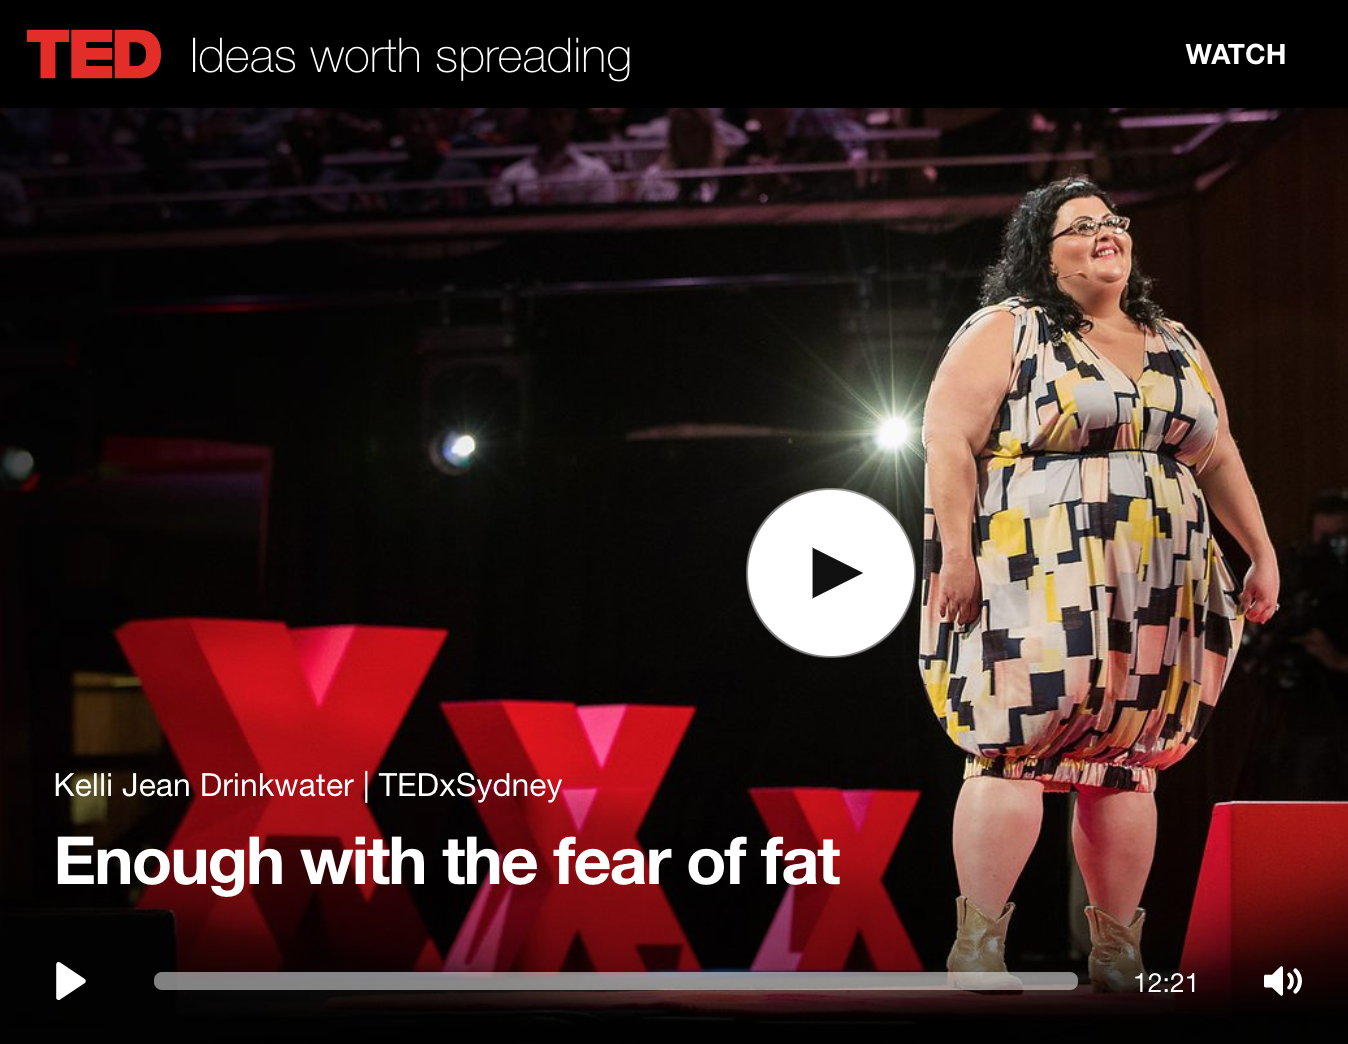 Enough With the Fear of Fat Kelli Jean Drinkwater